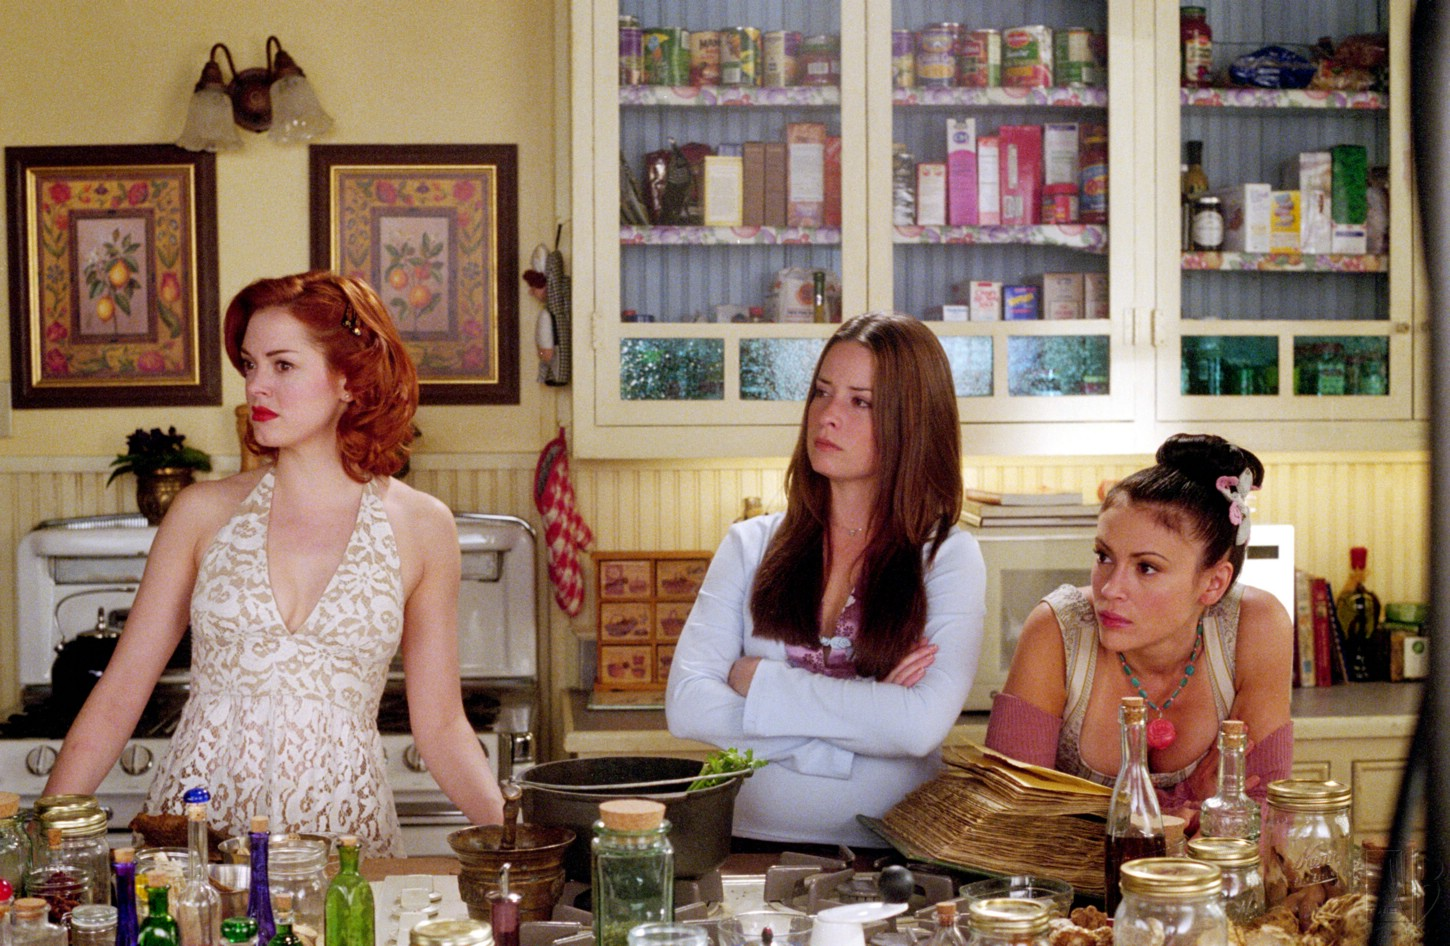 Charmed 10th anniversary special season 5 review centennial charmed 10th anniversary special season 5 review centennial charmed altavistaventures Choice Image